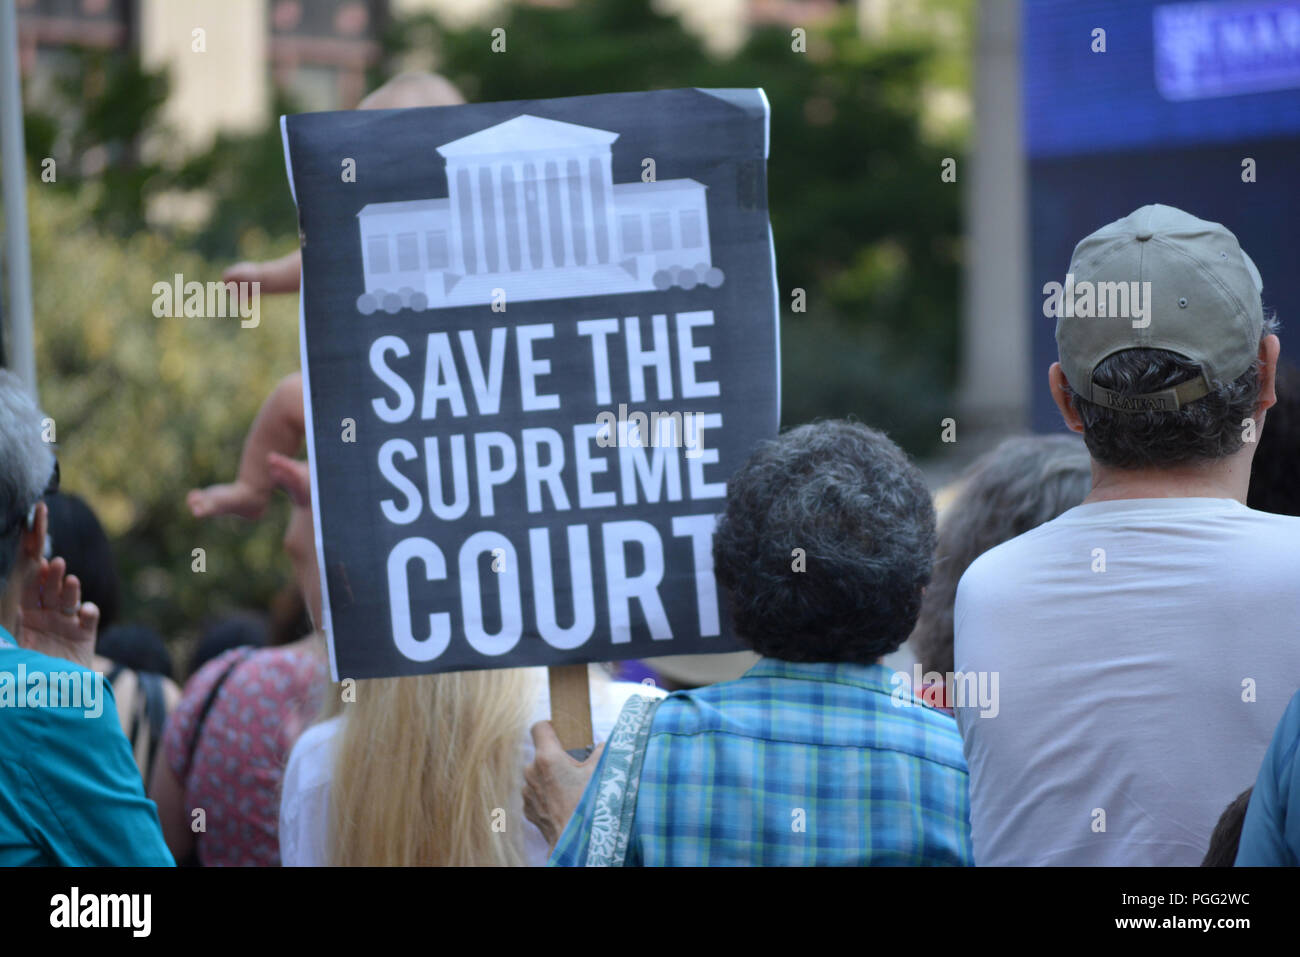 New York, USA. 26th Aug 2018. People protesting Supreme Court nominee Brett Kavanaugh at a rally in New York City.. Credit: Christopher Penler/Alamy Live News - Stock Image